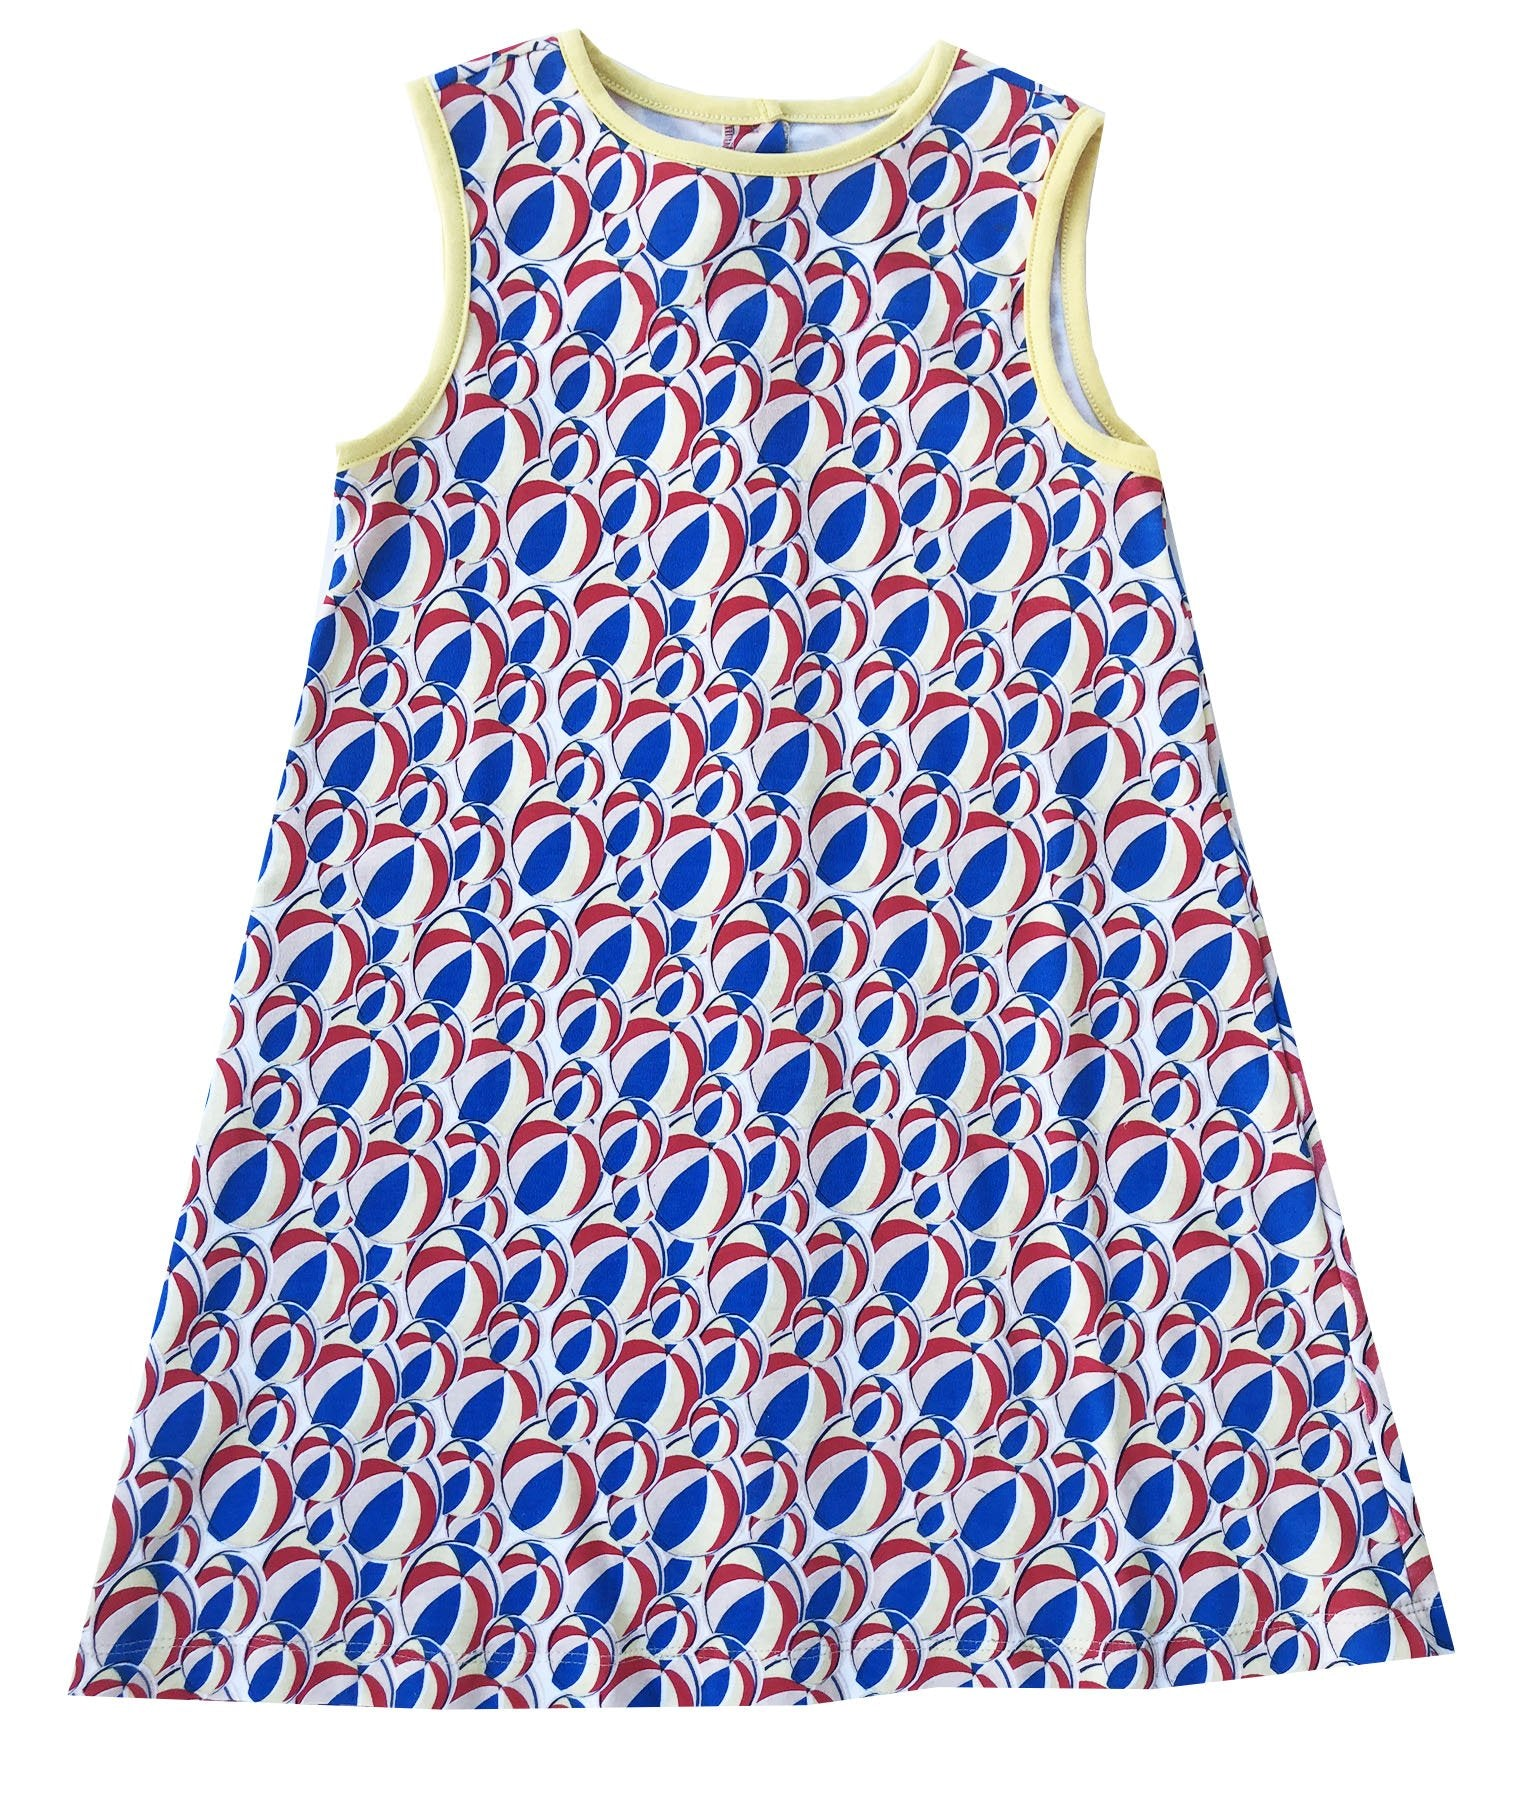 Darla Dress - Beach Ball